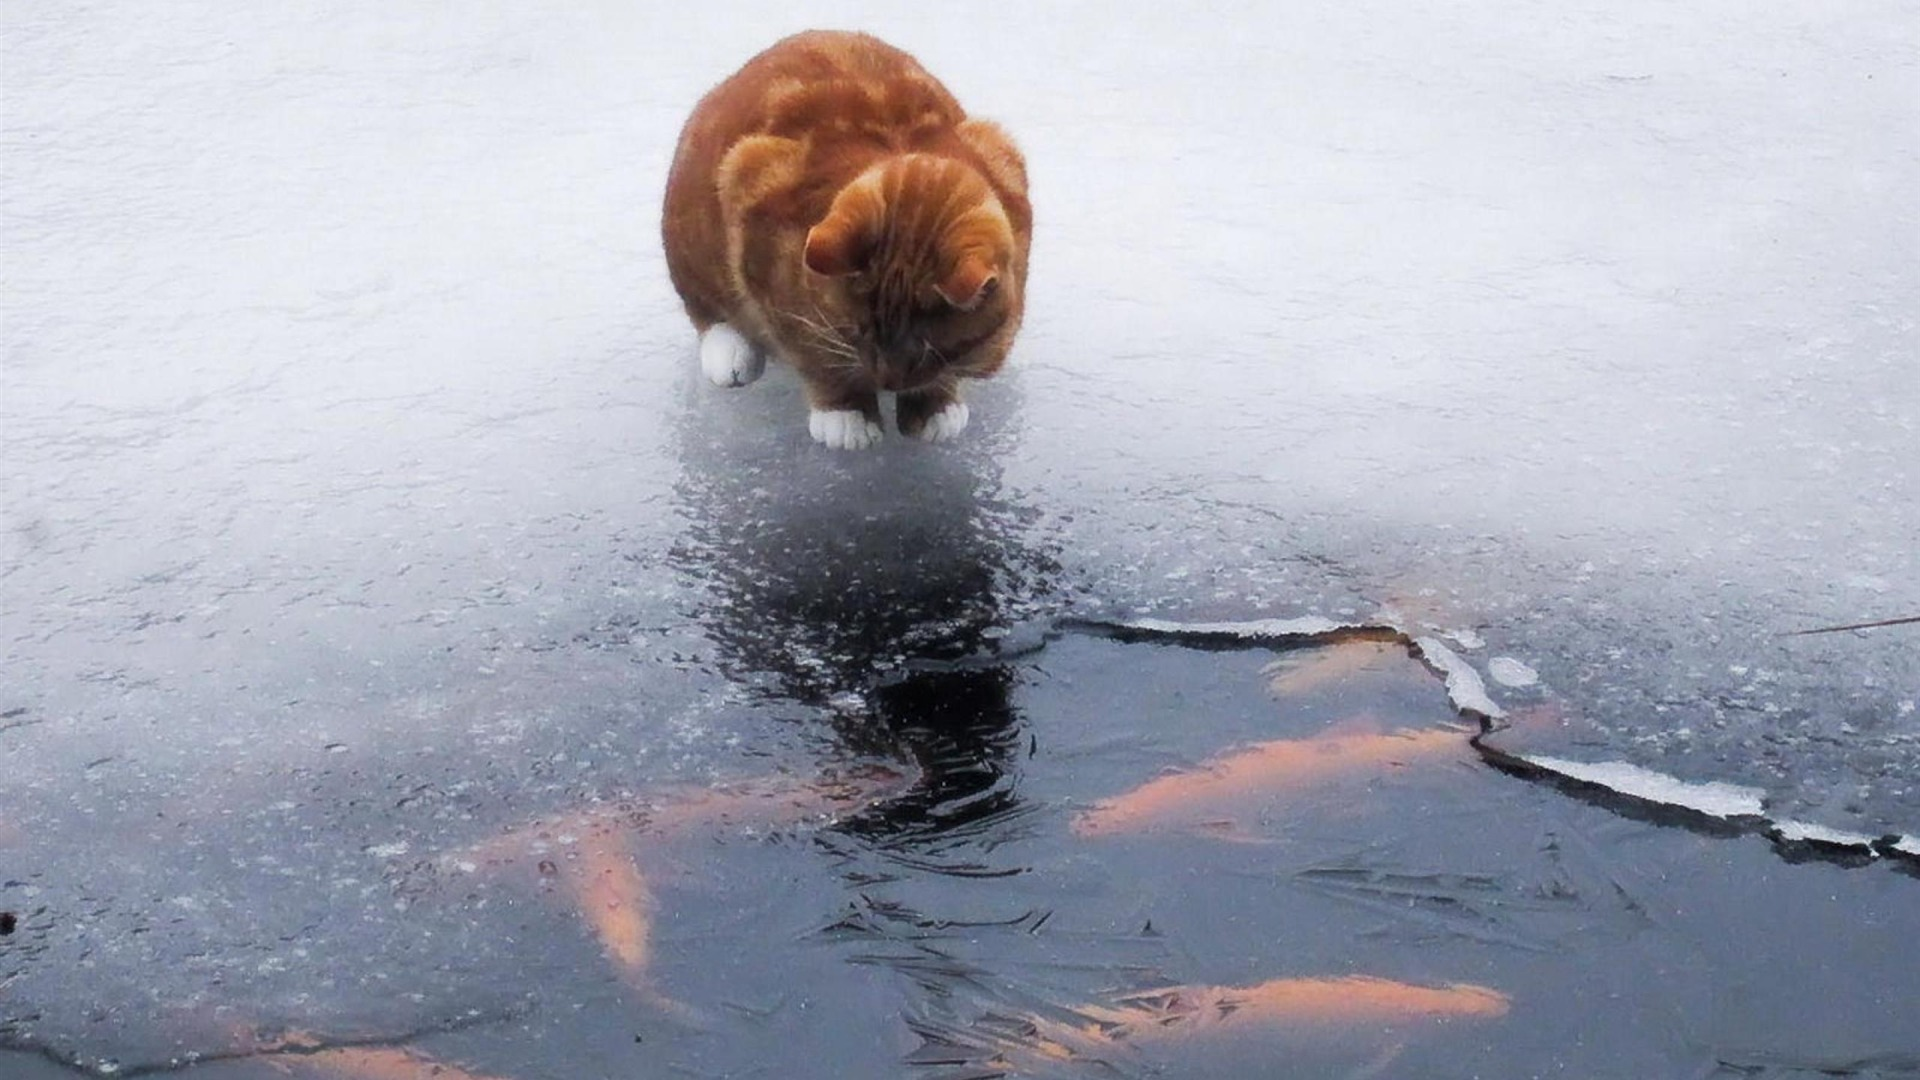 Red Cat Looks Old Window Winter Stock Photo - Image of ...  |Winter Scenes With Cats